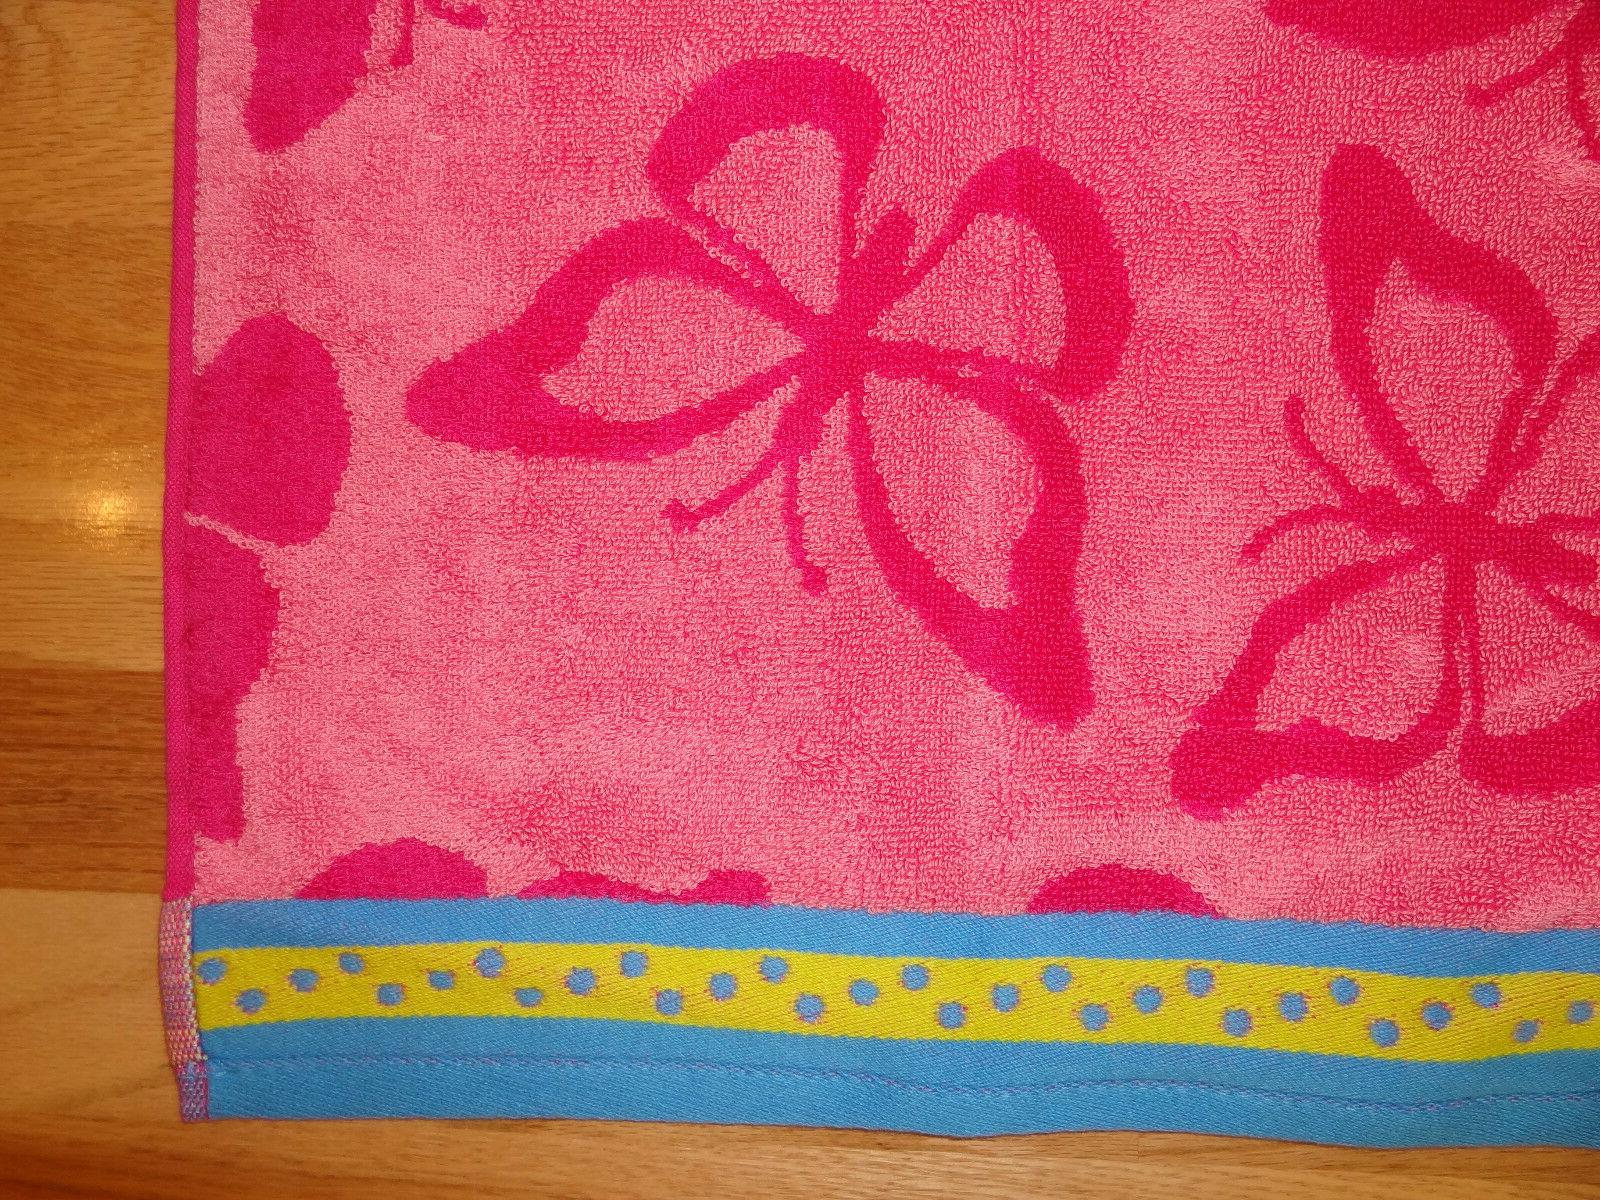 New Youth x Towel Pink Butterfly Design Soft